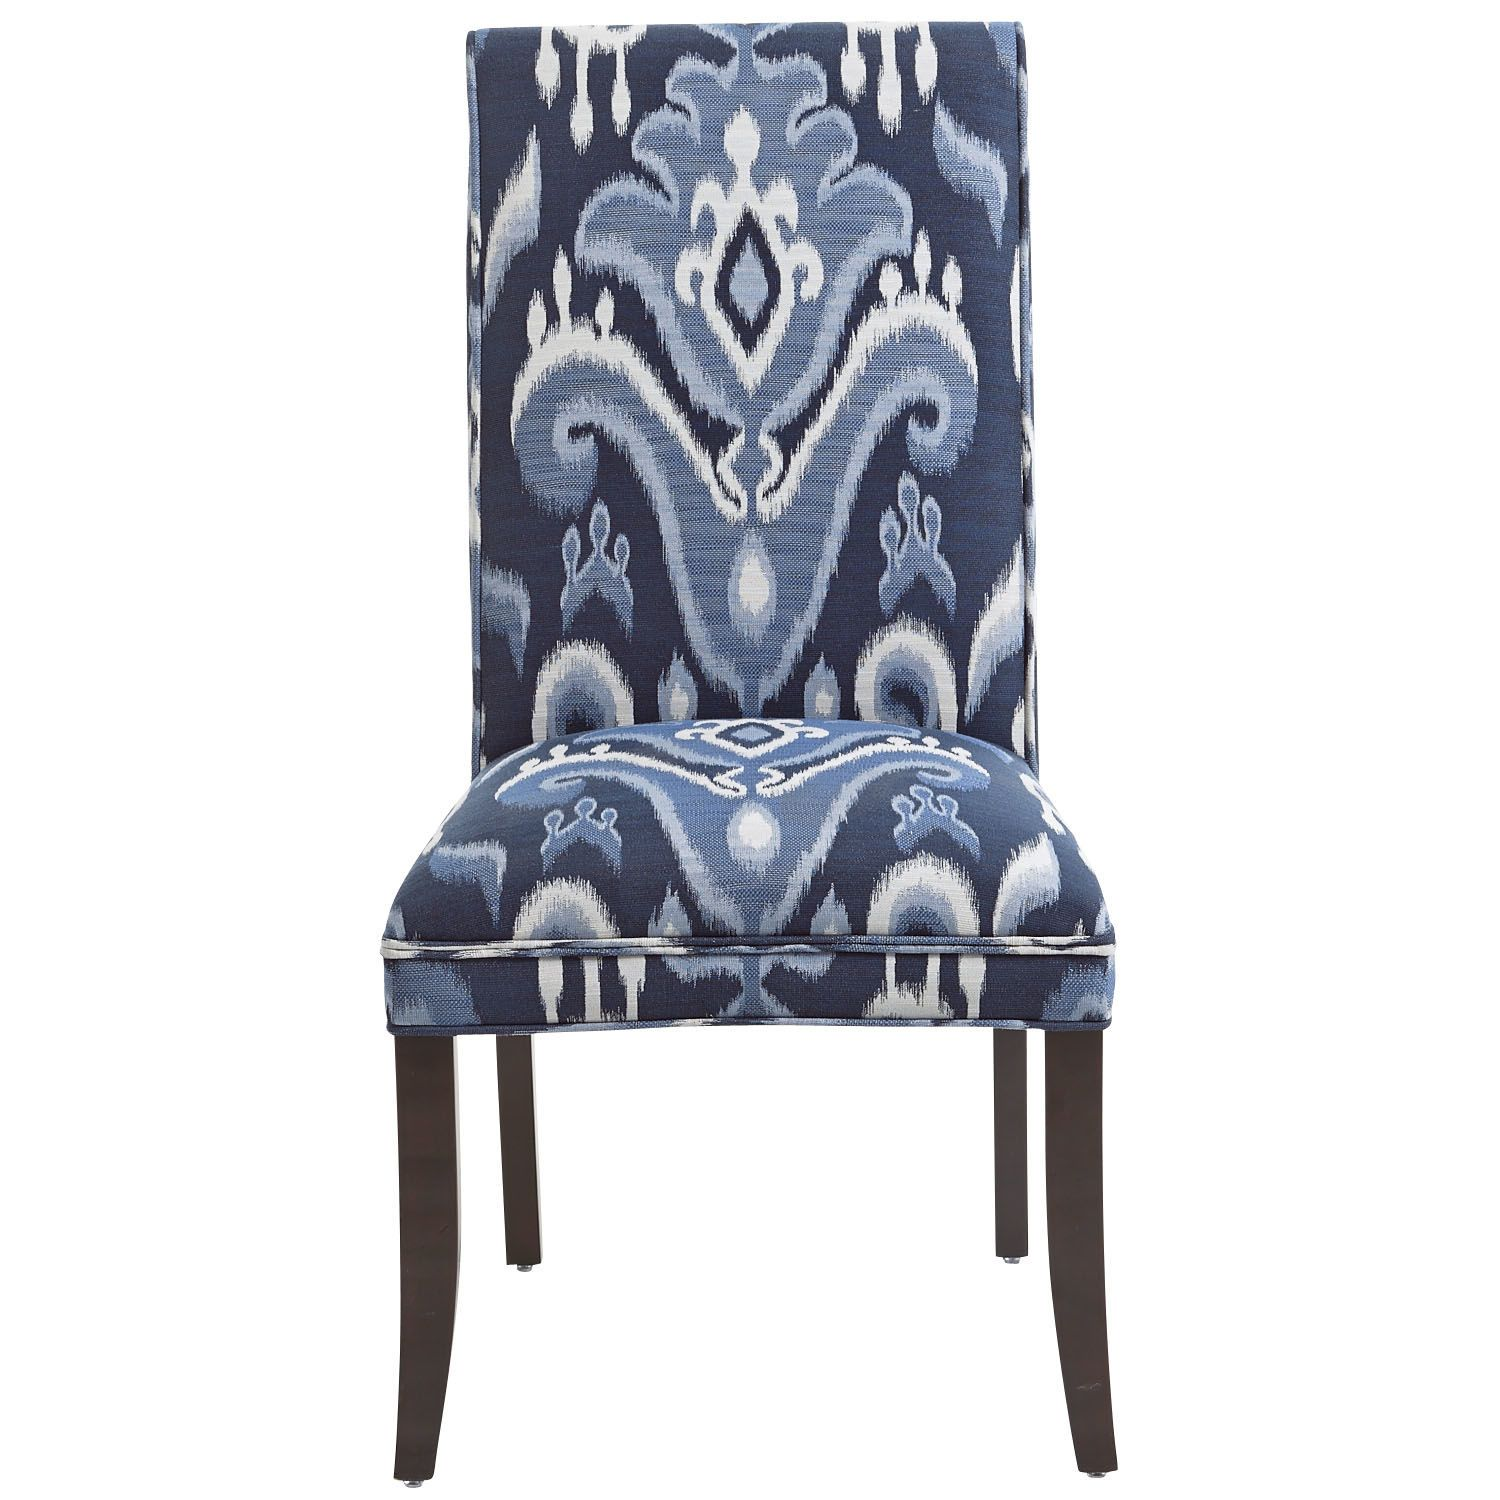 Angela Deluxe Dining Chair Indigo Ikat Chair Traditional